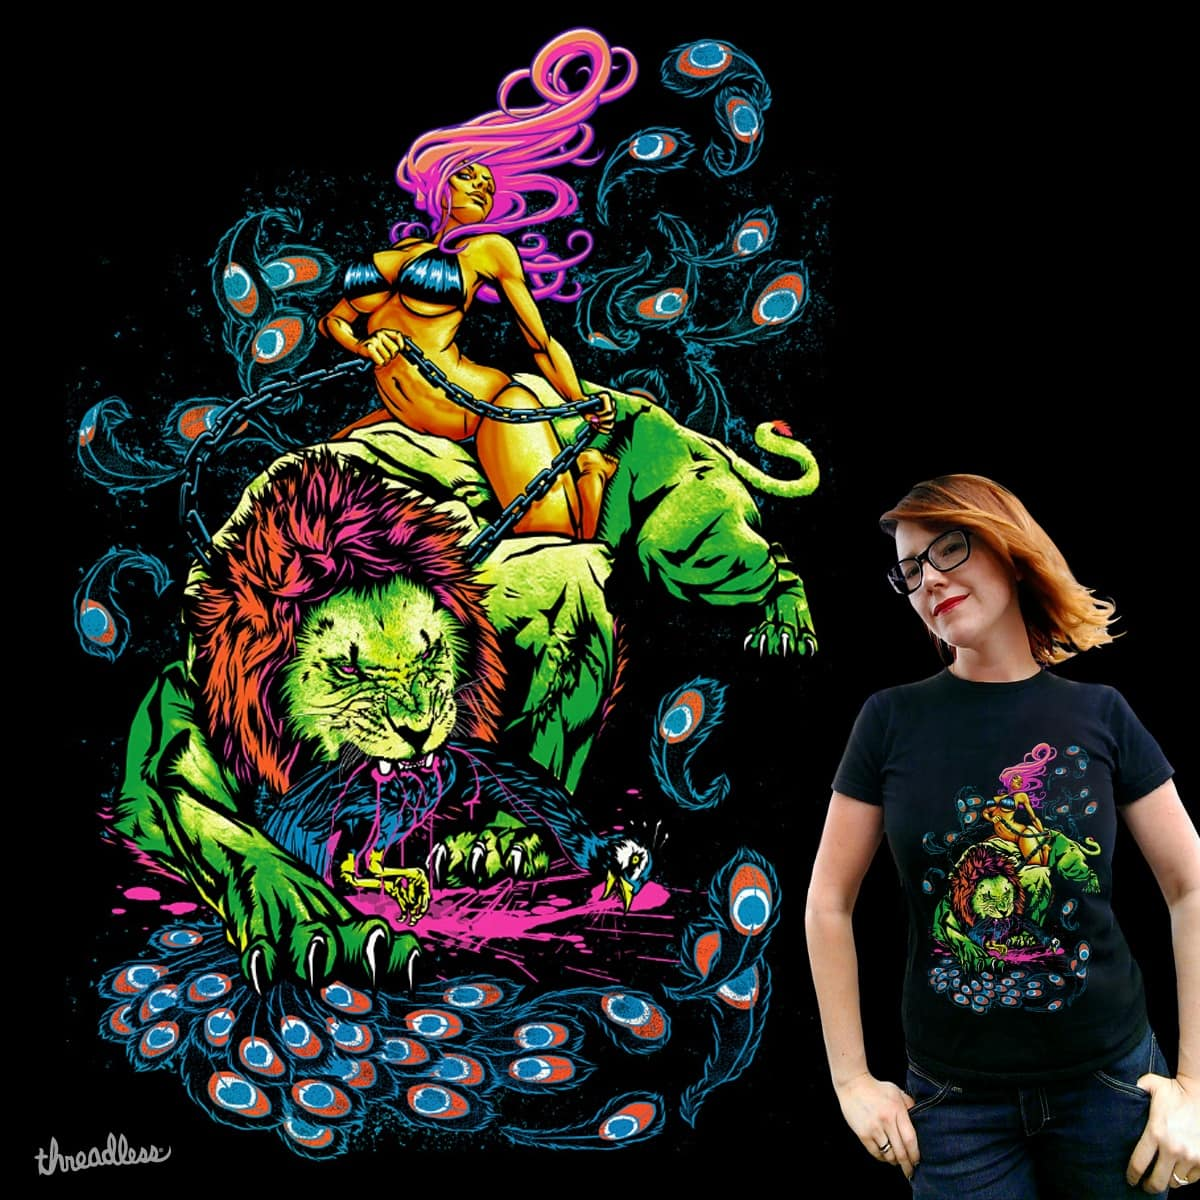 SOUR PUSS by Dick Firestorm and franx on Threadless